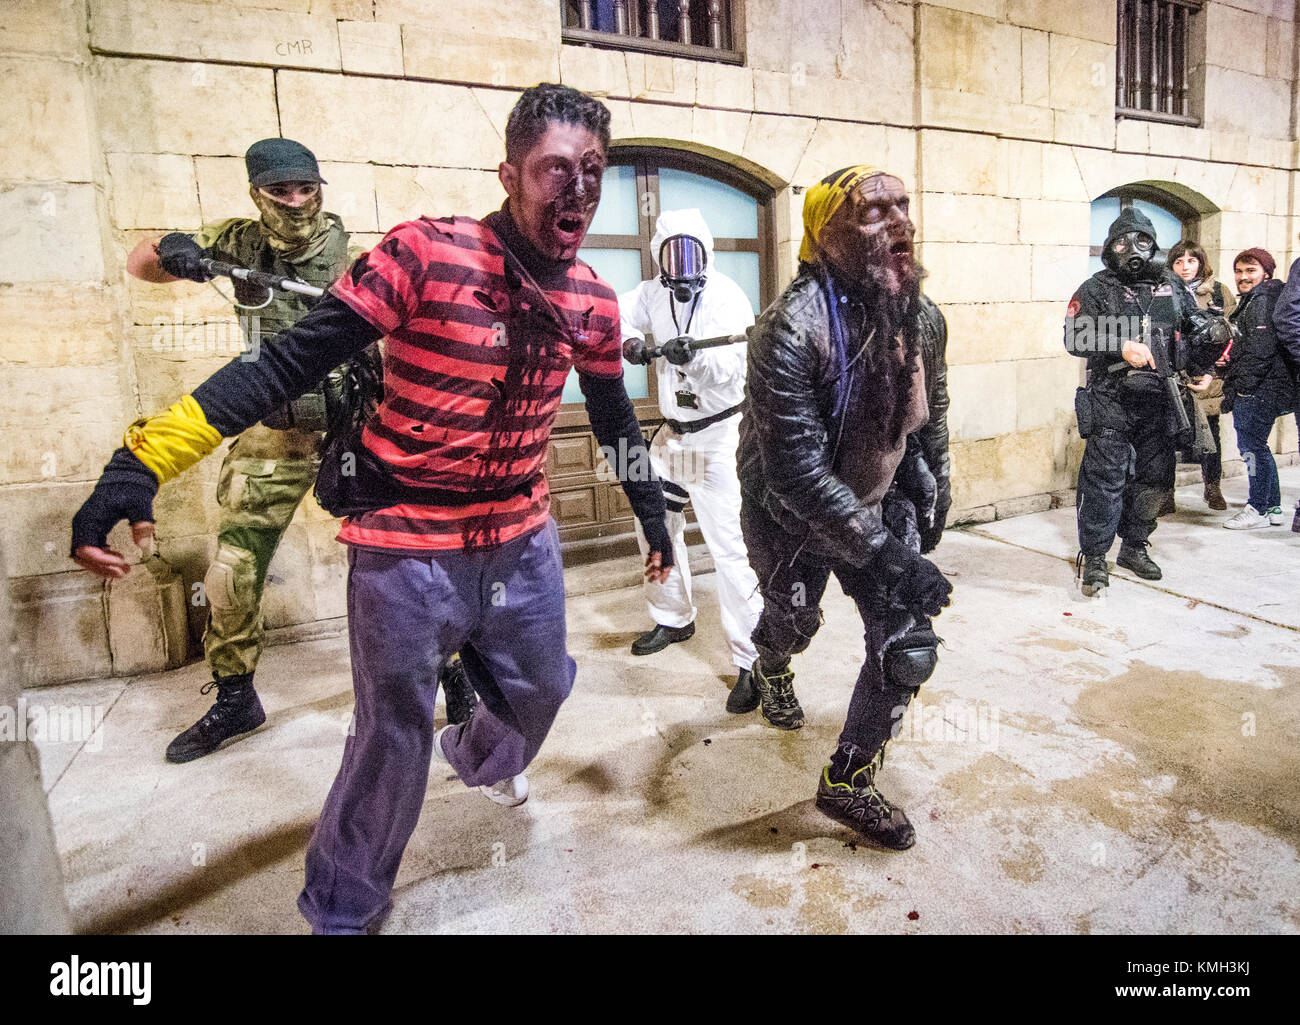 Aviles, Spain. 9th December, 2017. Zombies at the strret during the Survival Zombie on Decemberber 9, 2017 in Aviles, - Stock Image